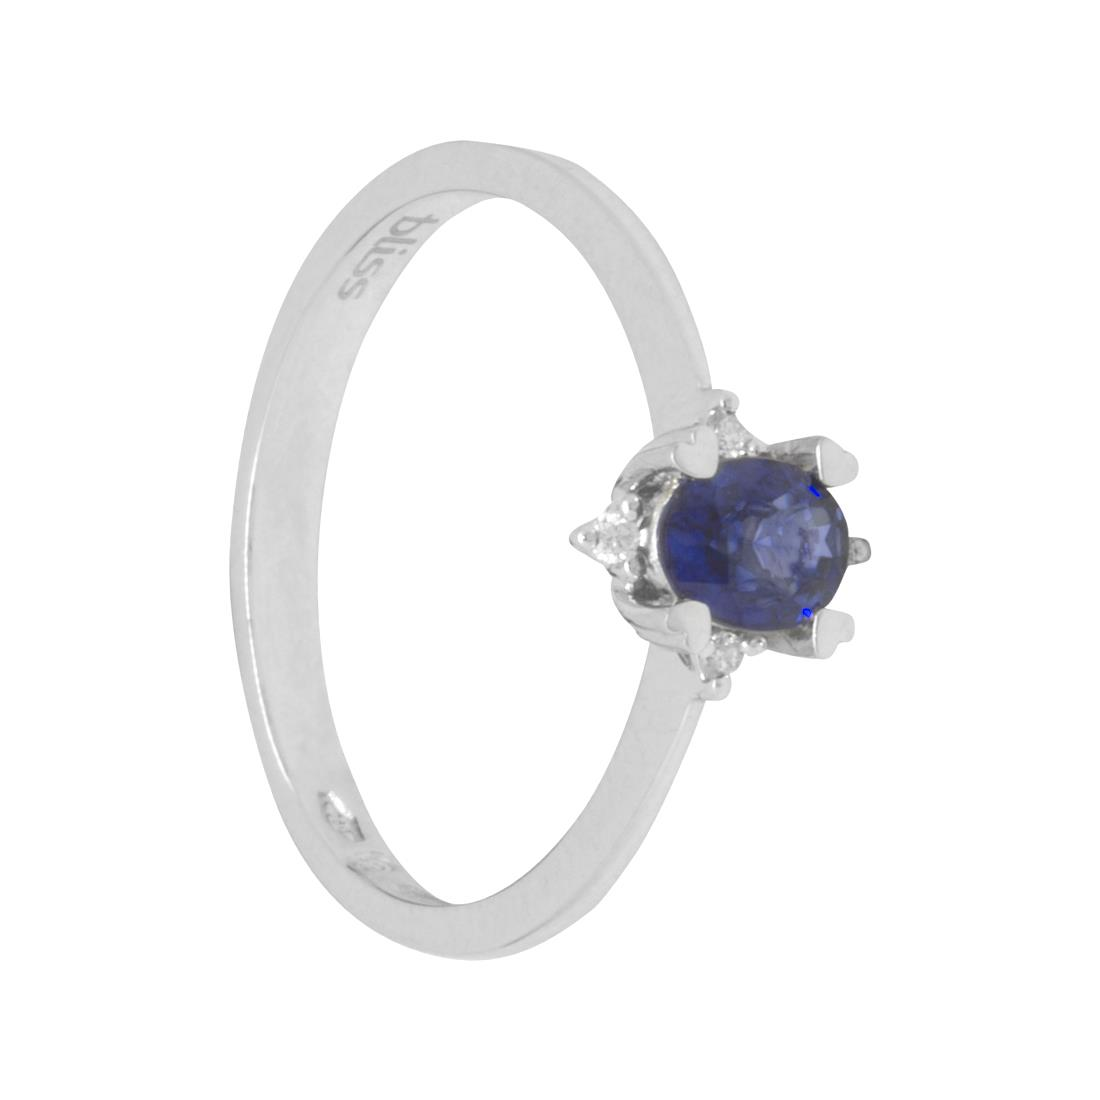 Anello con zaffiro e diamanti  - BLISS